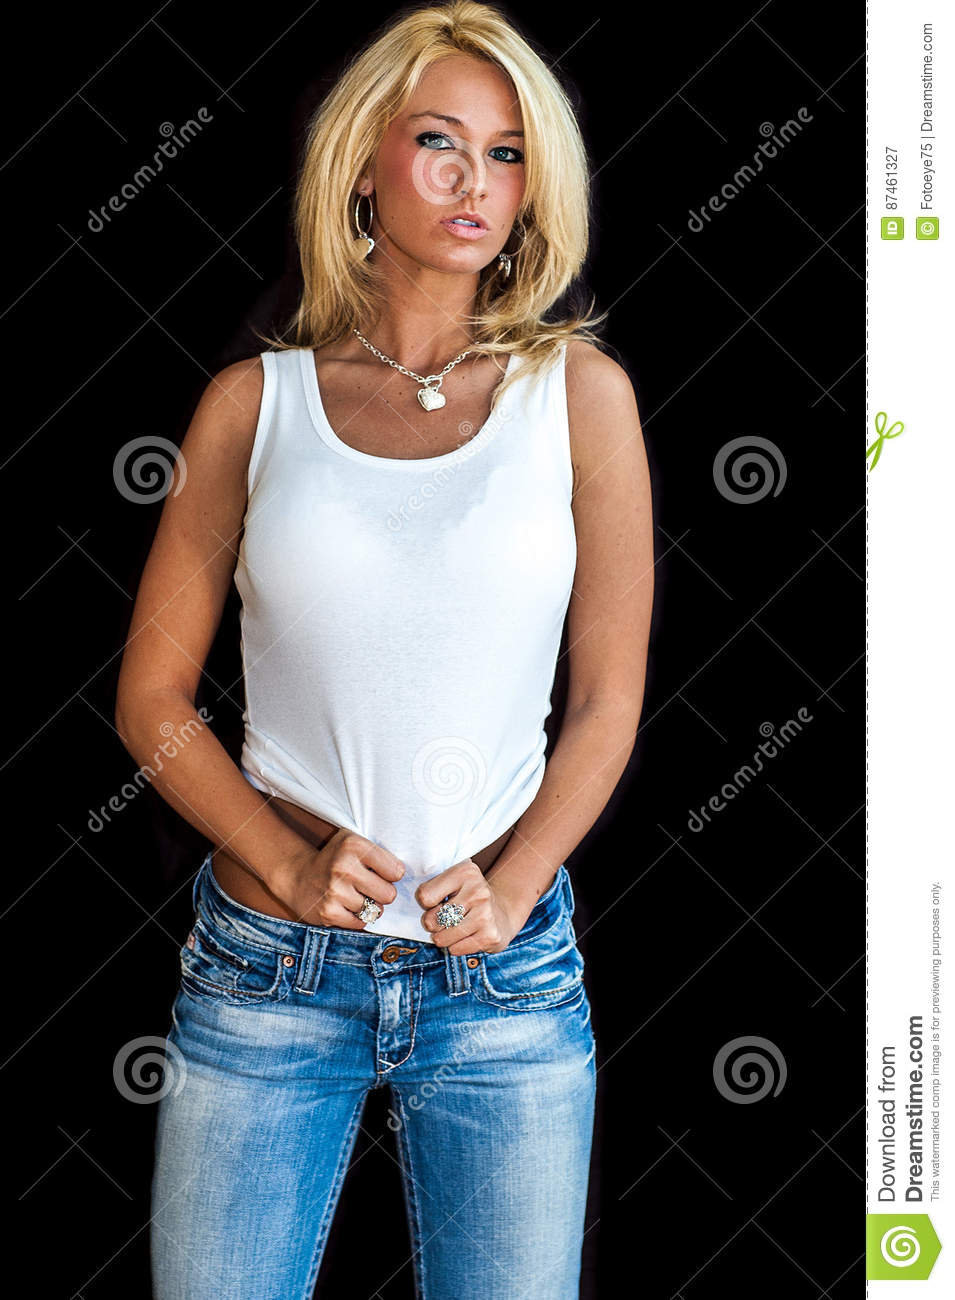 39604bf756a5 woman / girl blonde fashion model. Dressed in denium blue jeans and white  tank top shirt. Woman / female studio portrait isolated against black  background.